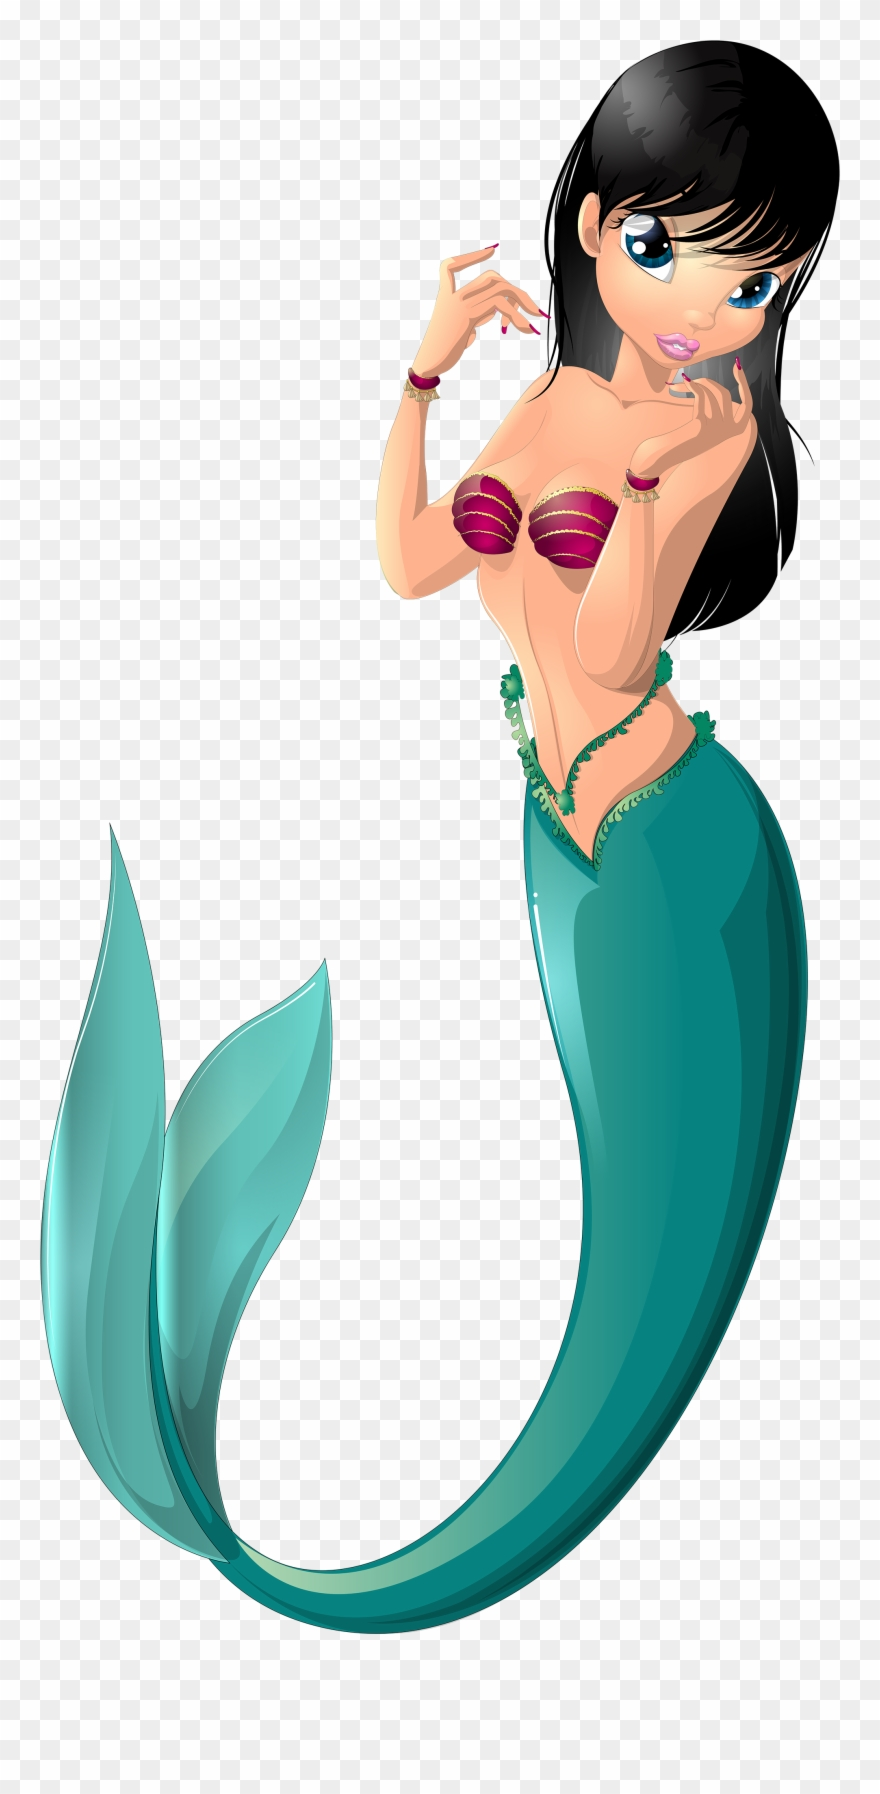 Black mermaid with beads clipart vector royalty free library Mermaid Png Clip Art Imageu200b Gallery Yopriceville - Black Hair ... vector royalty free library